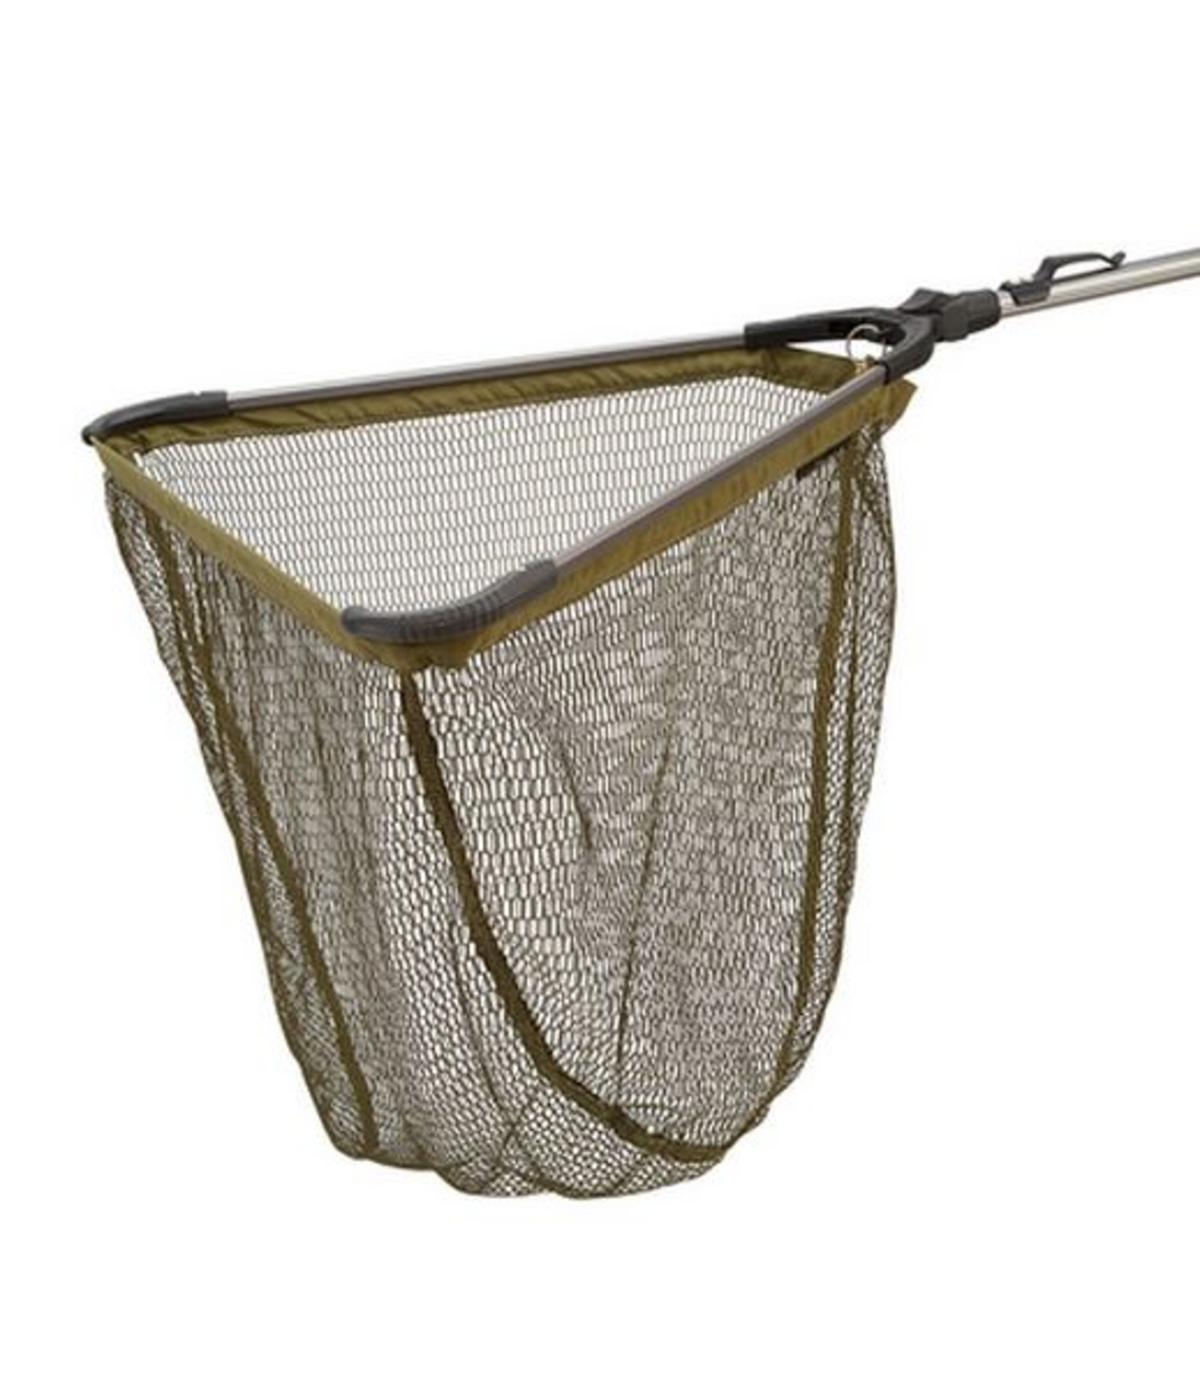 New daiwa trout fishing folding telescopic landing net for Telescoping fishing net